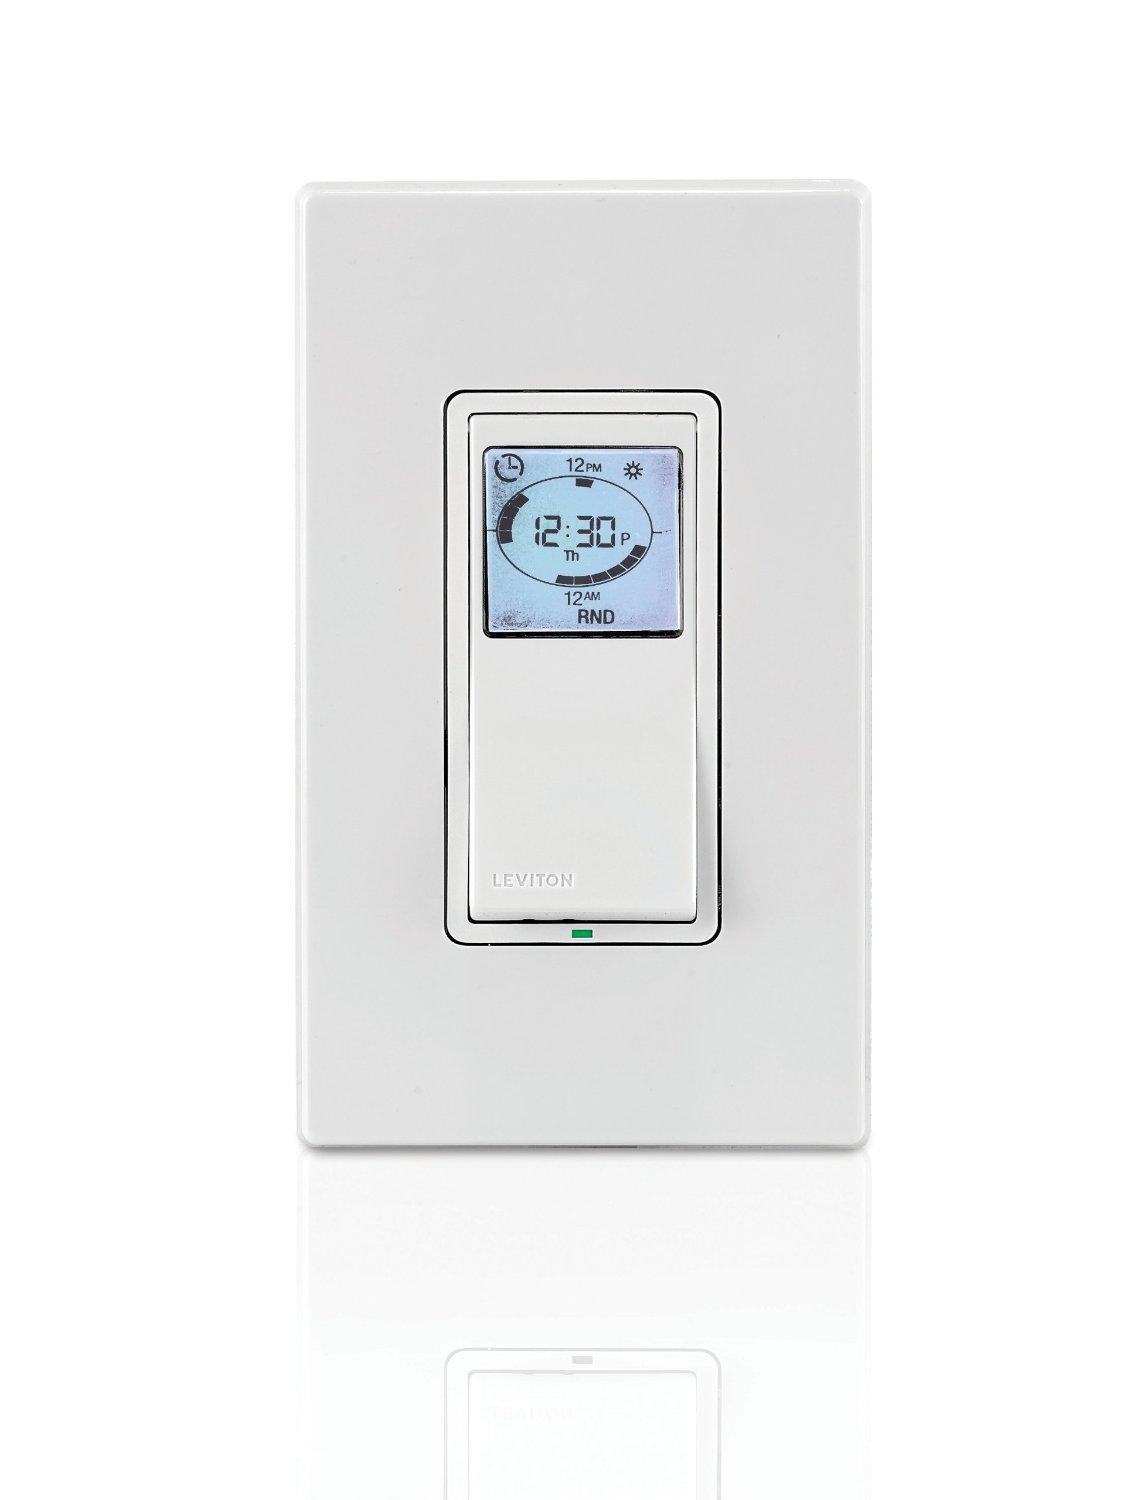 Leviton 021 Vpt24 1pz Vizia 24 Hour Programmable Indoor